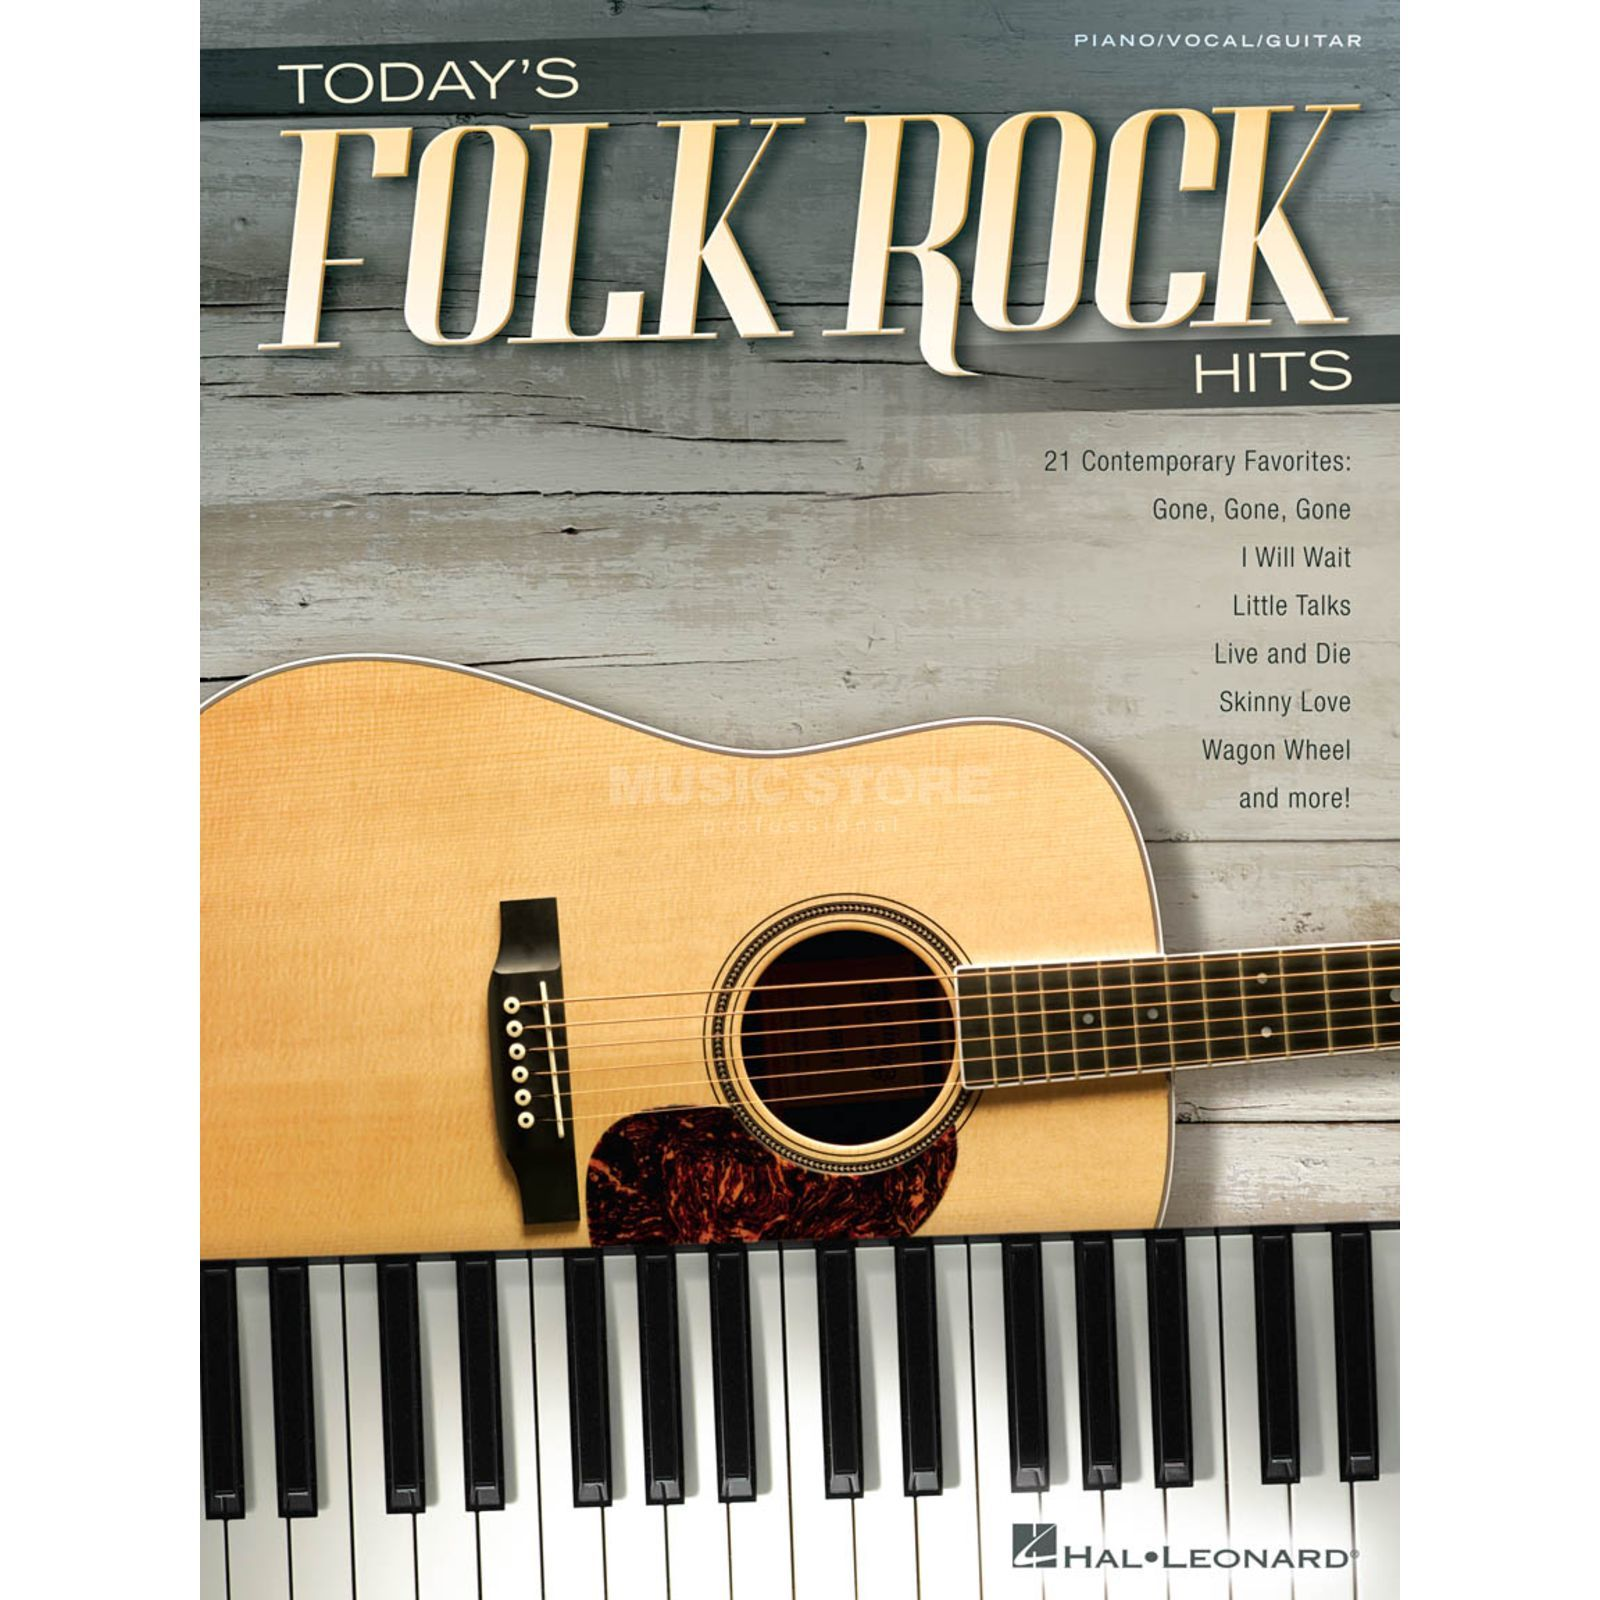 Hal Leonard Today's Folk Rock Hits Produktbild